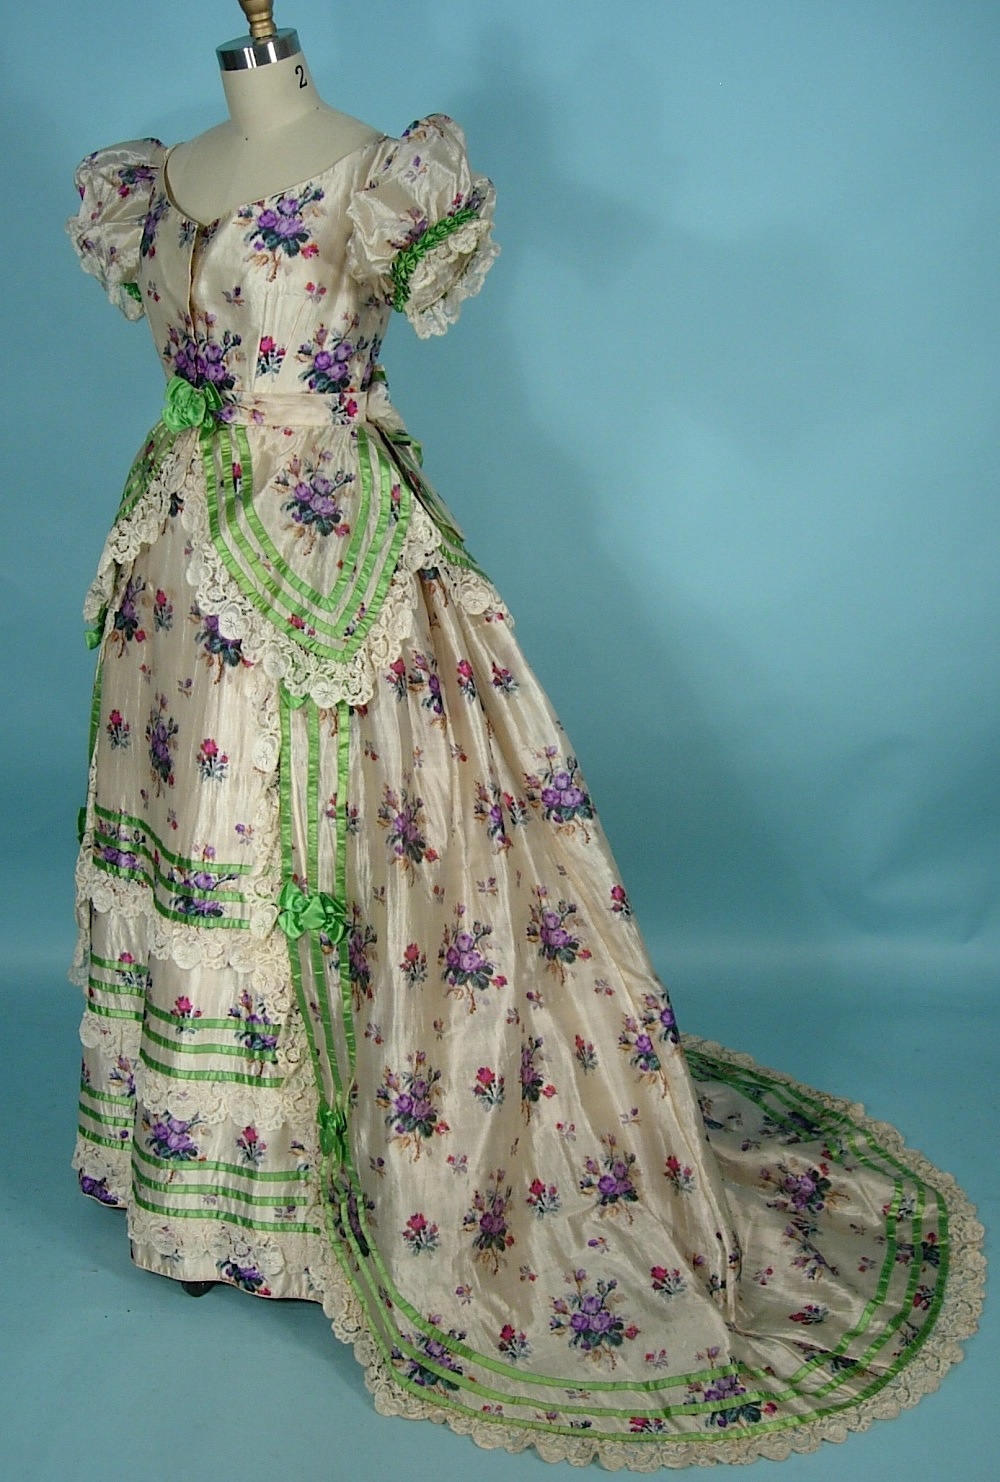 AntiqueDress.com - Museum items for Sale